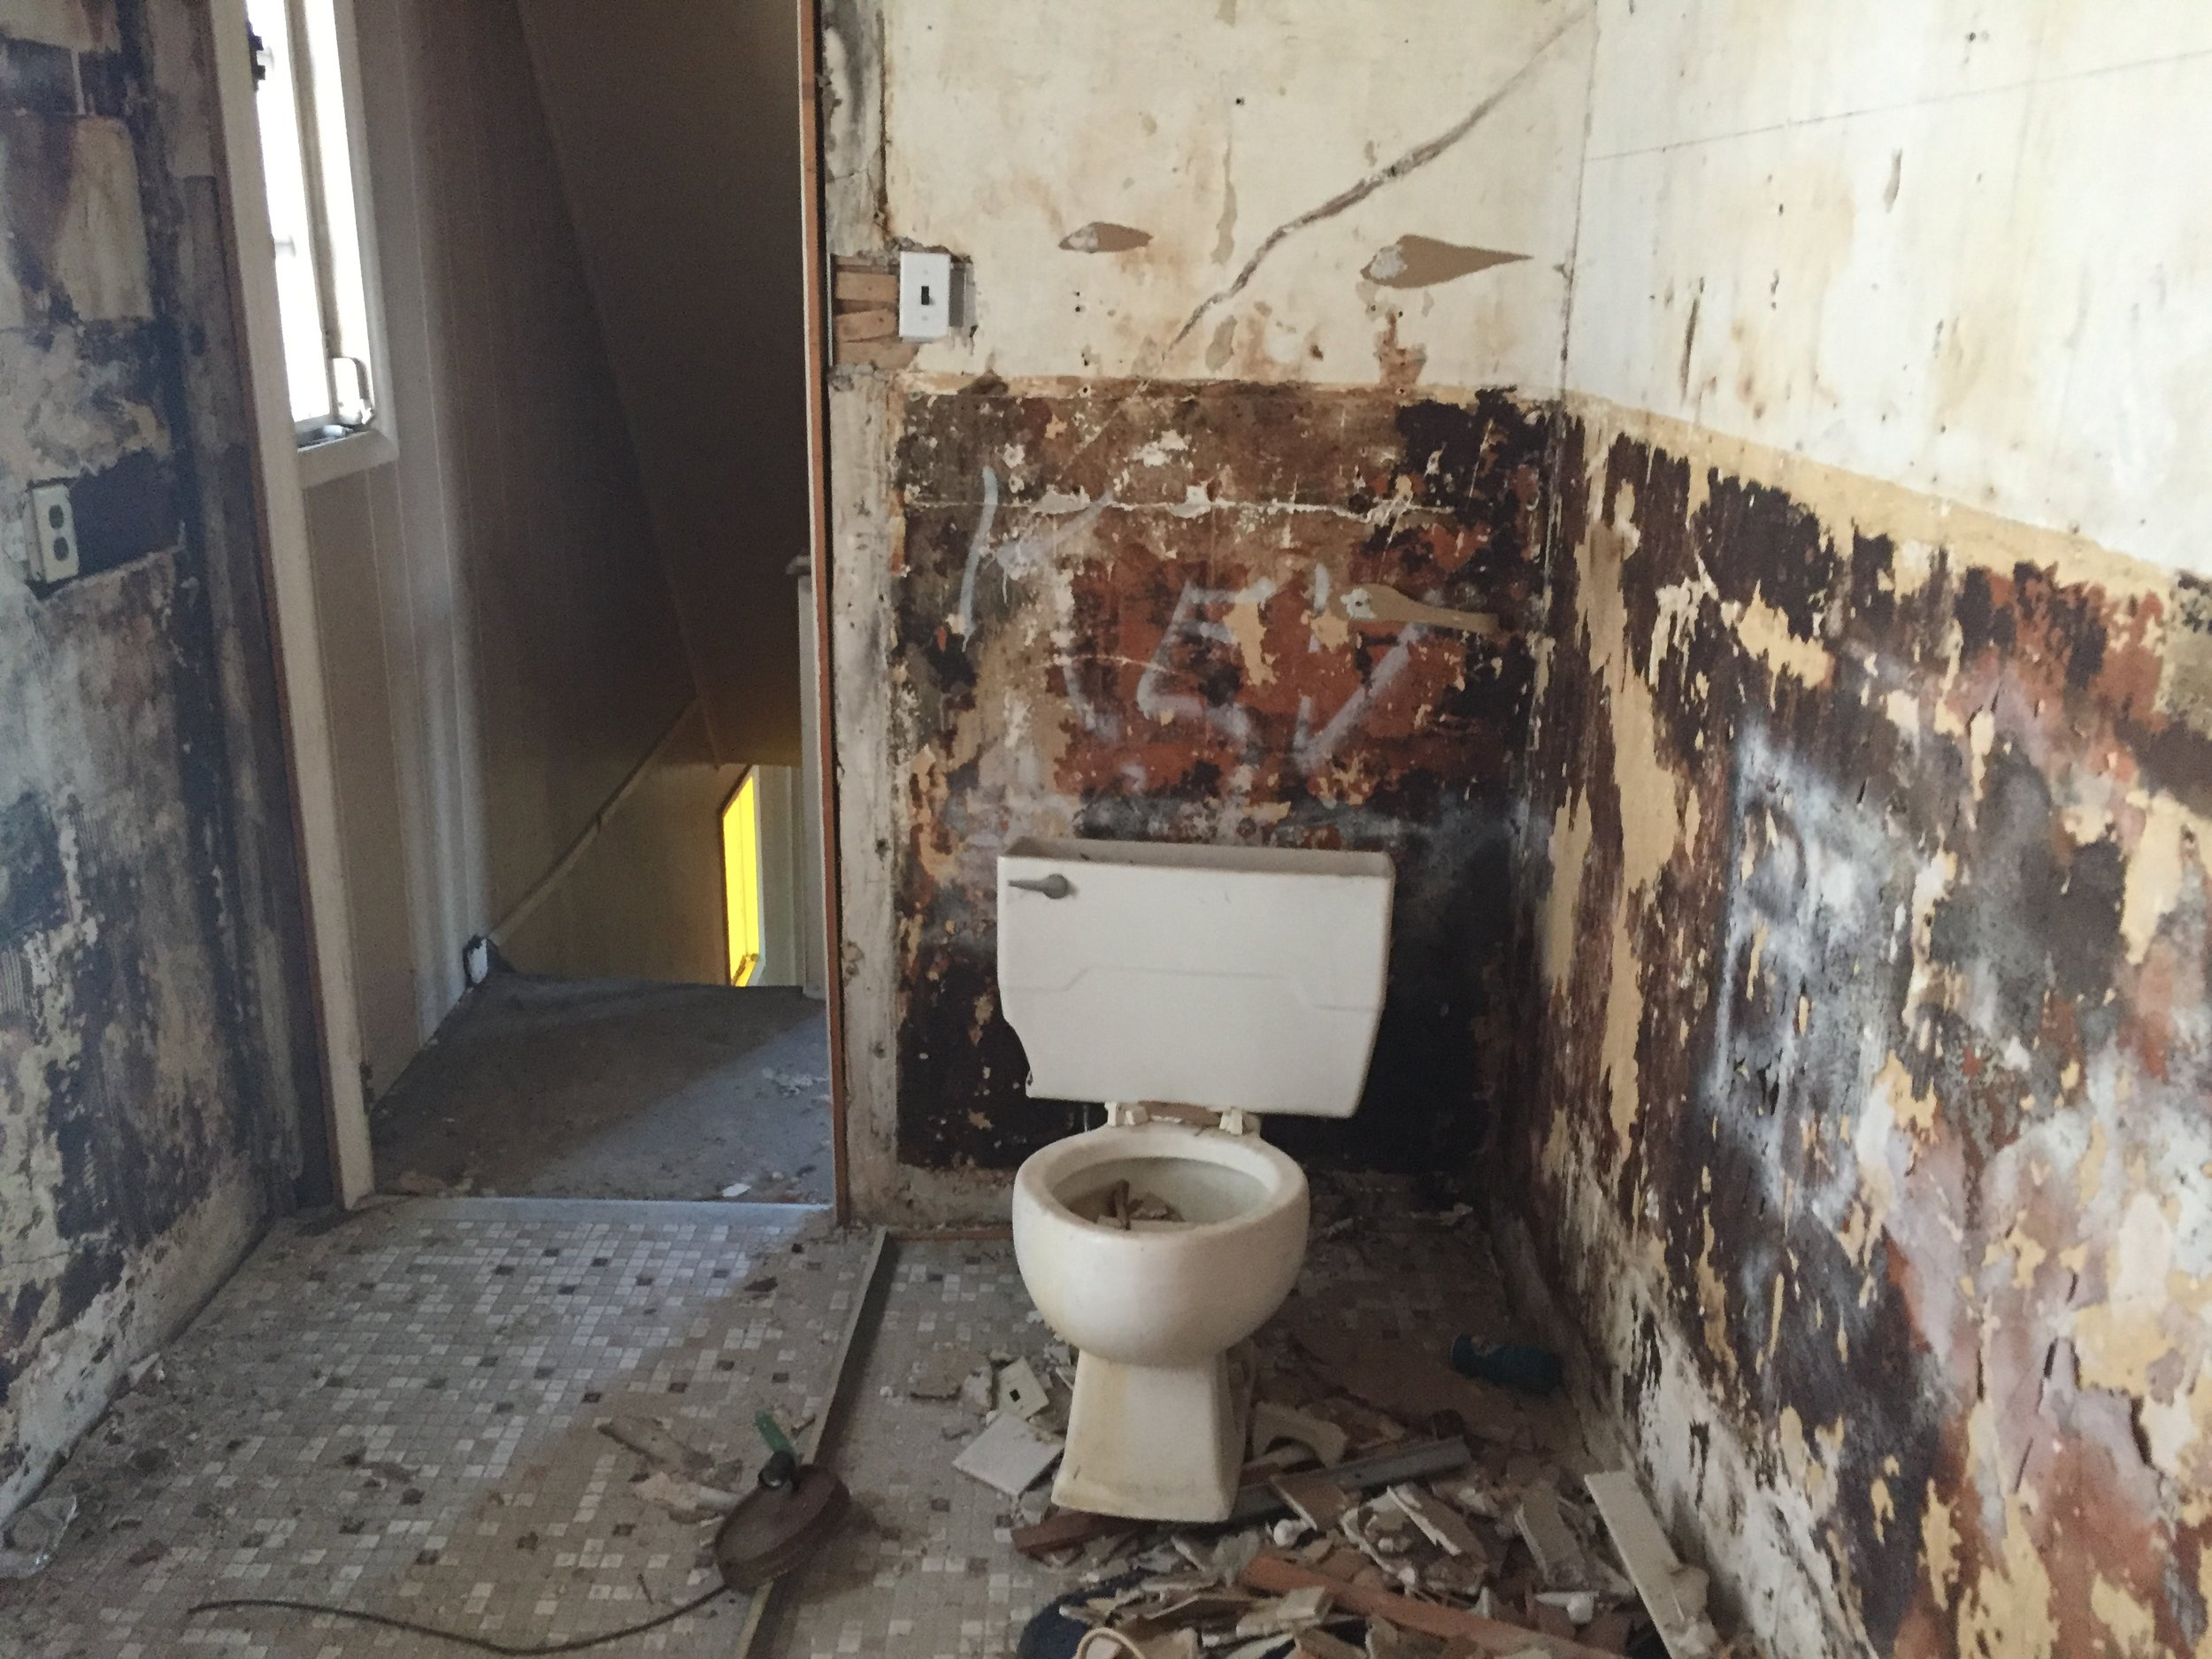 First Wildwood house - at least they kept the original toilet.